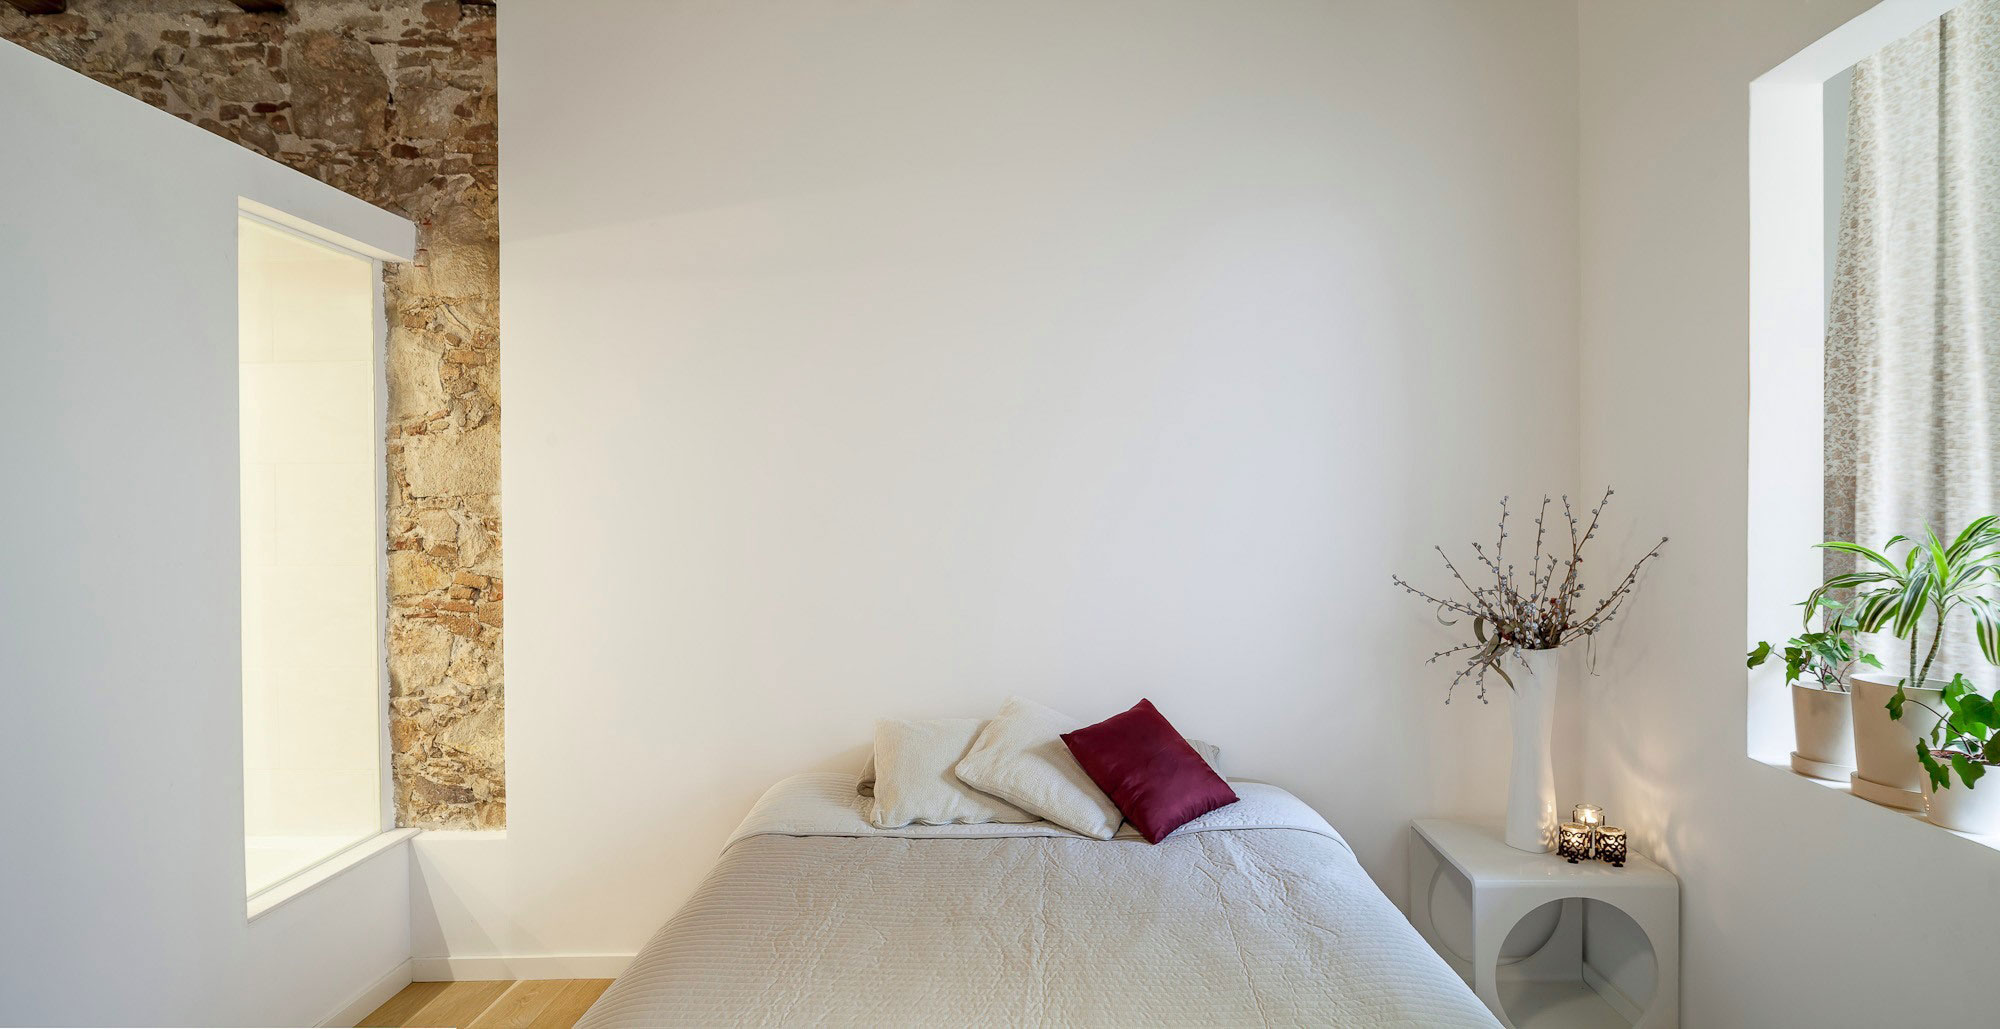 Renovation-Apartment-in-Les-Corts-bedroom